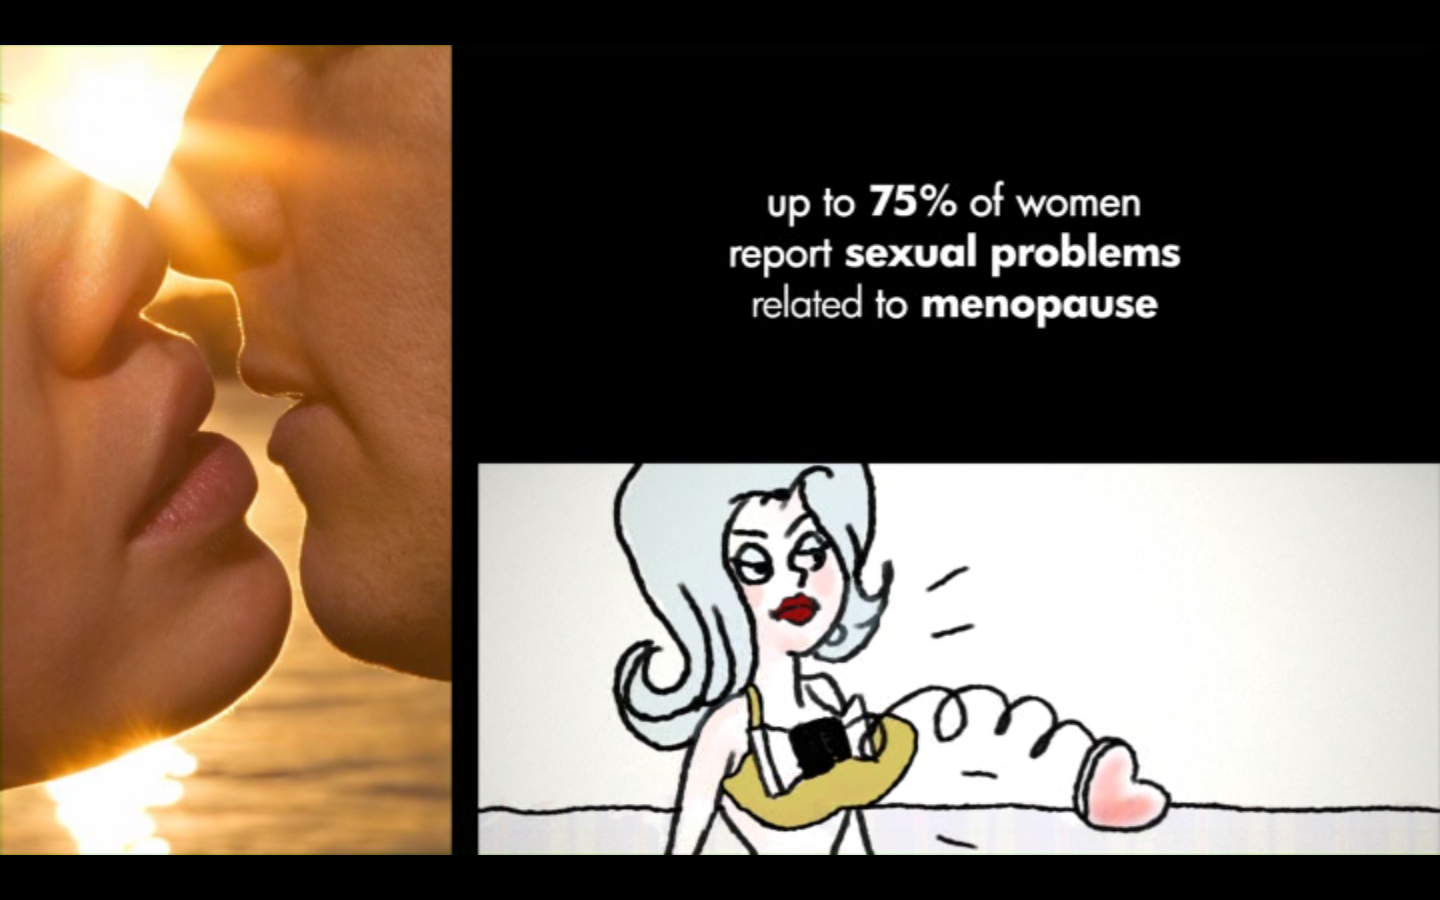 75% of women report sexual problems related to menopause